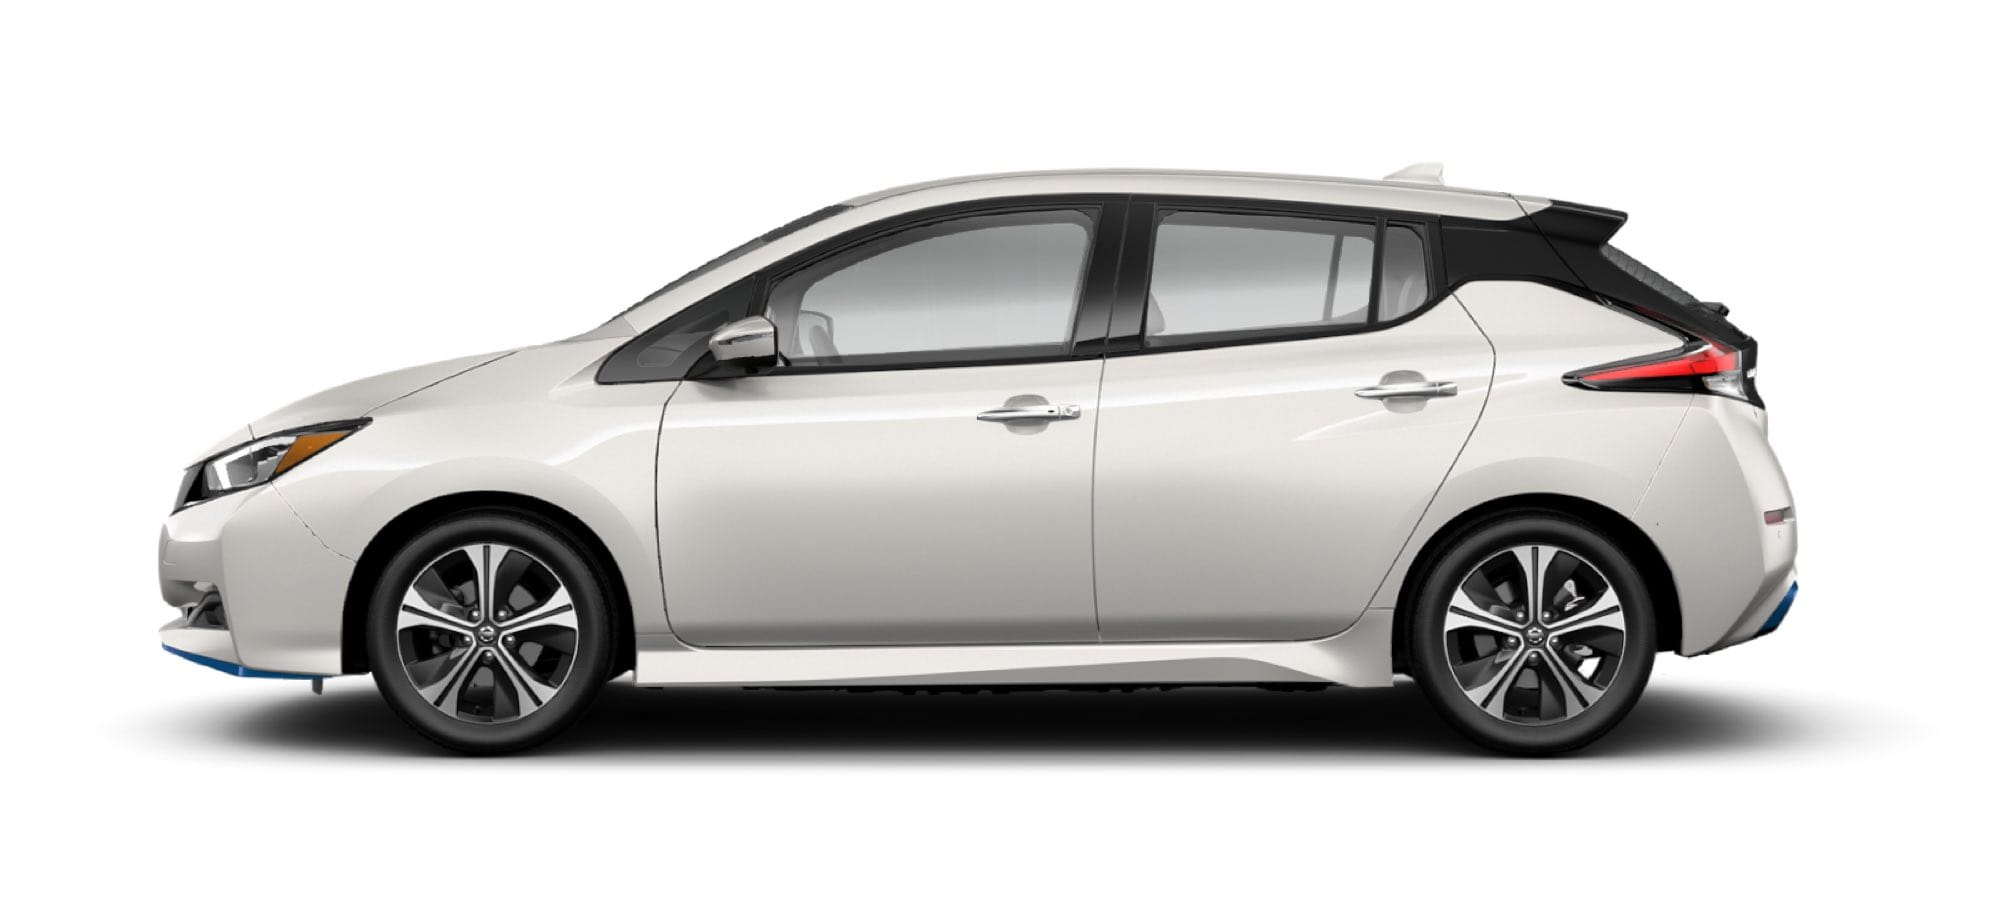 2021 Nissan LEAF in Pearl White TriCoat